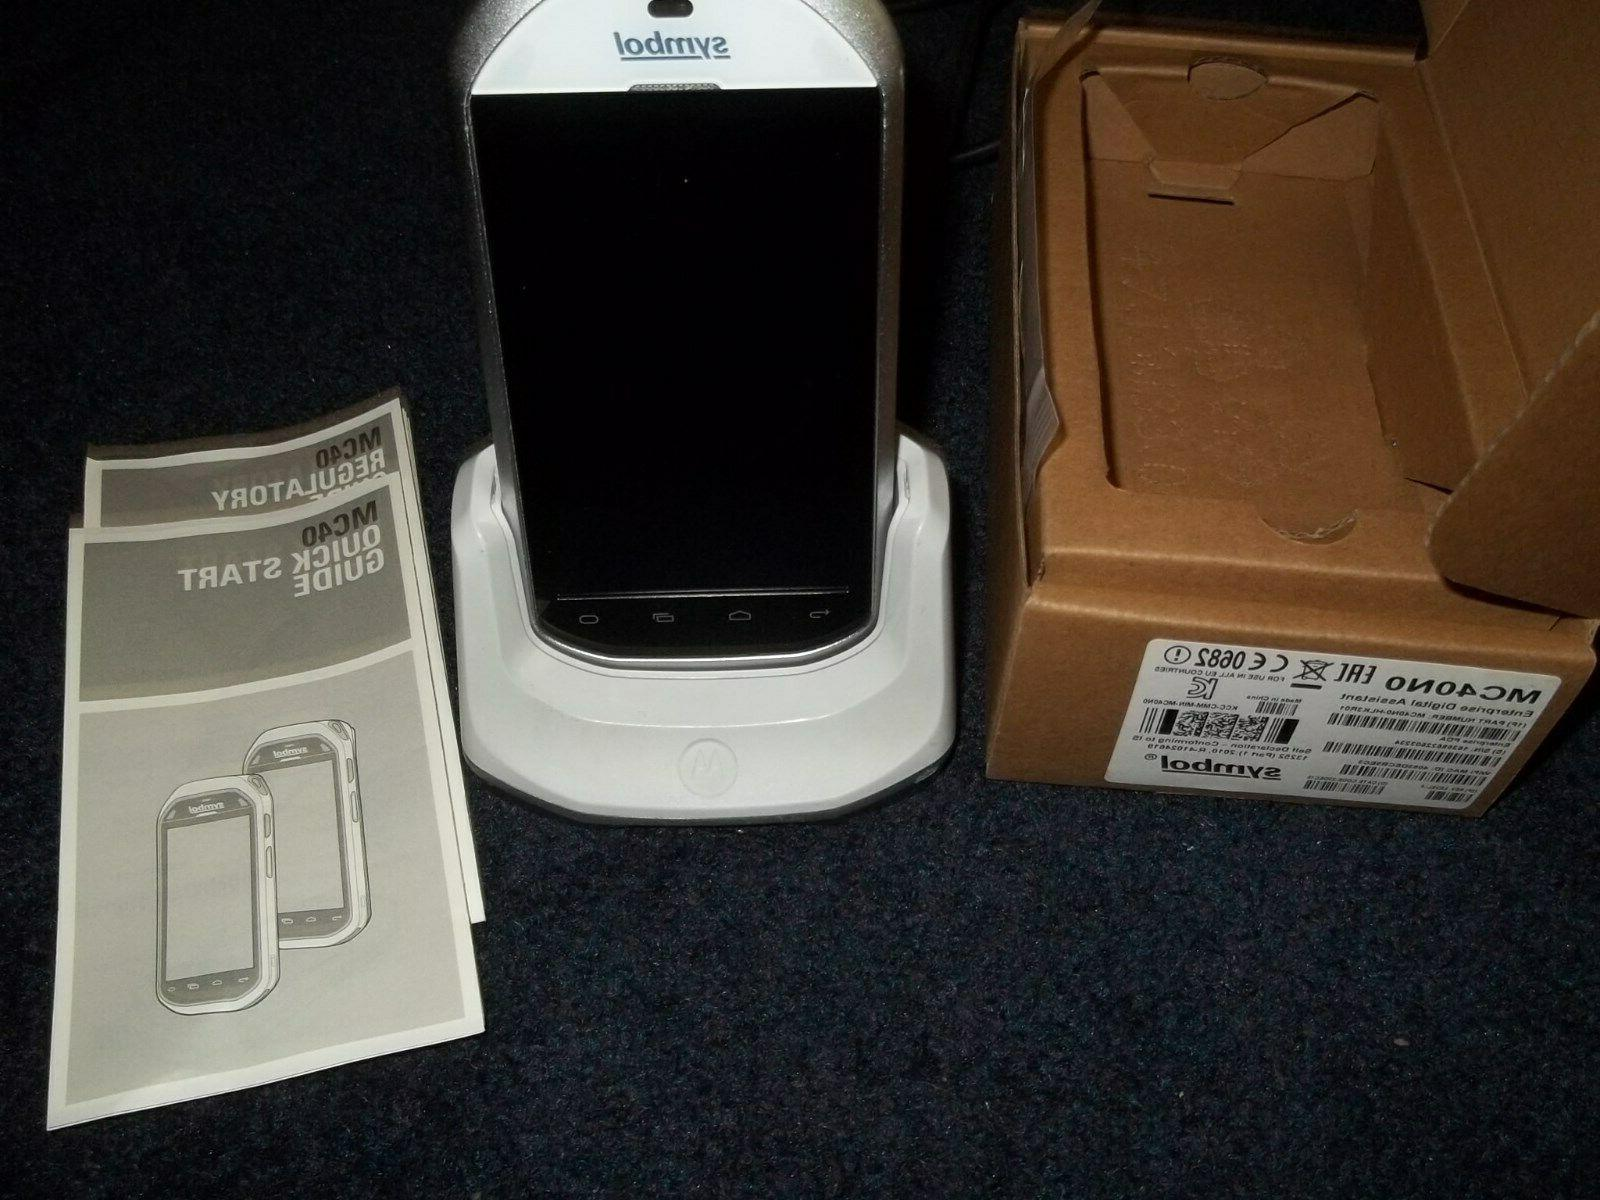 mc40n0 mobile computer barcode scanner with charger